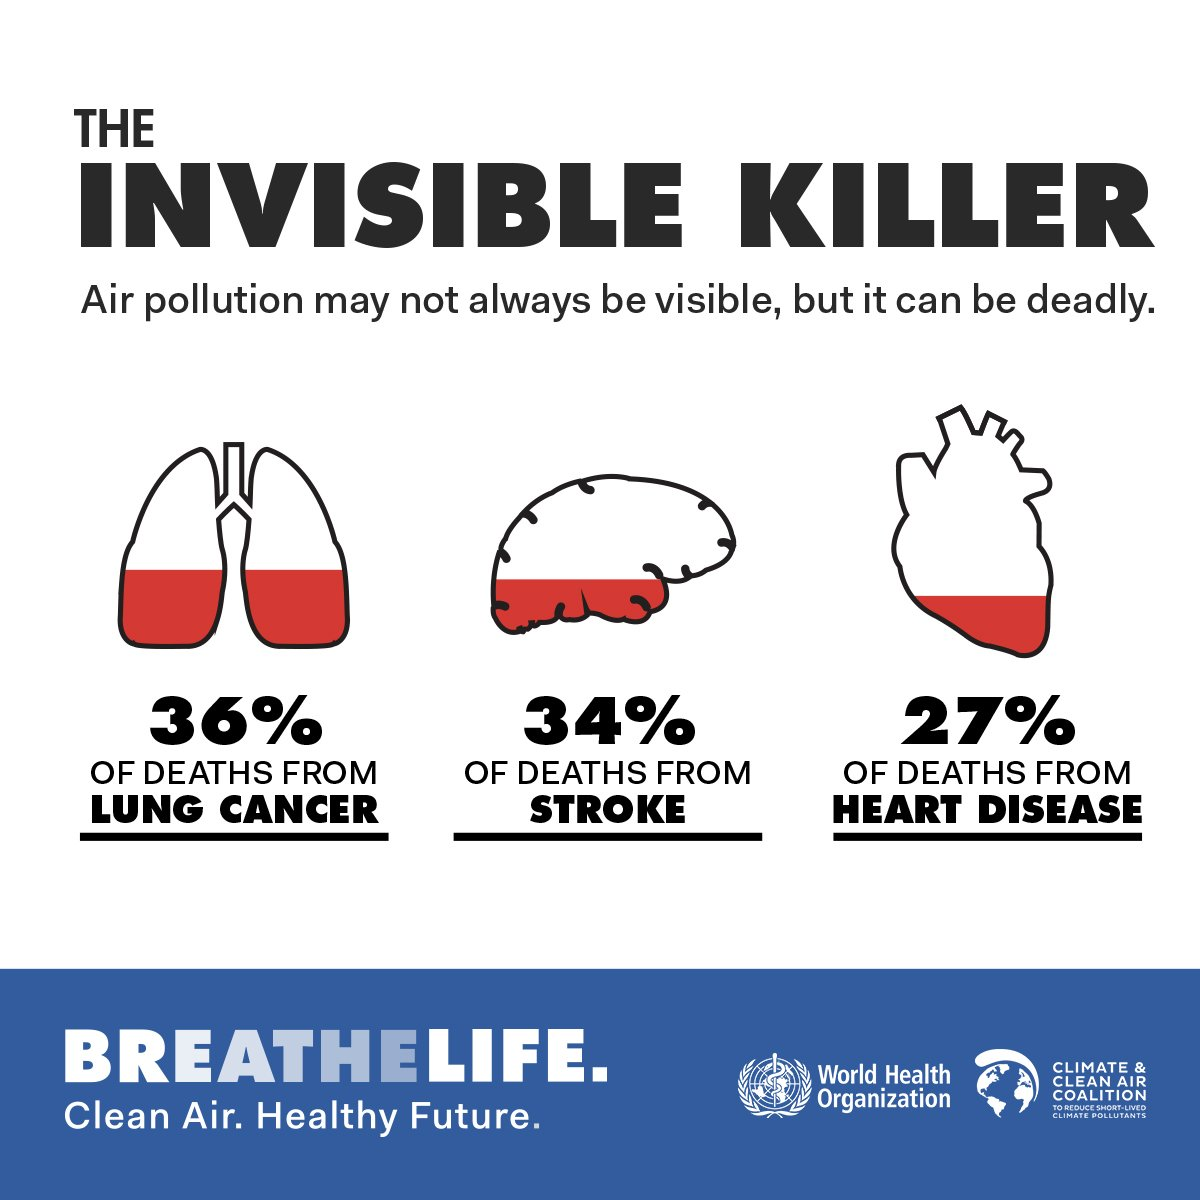 #AirPollution may not always be visible, but it can be deadly https://t.co/Dcm5E39bsq #BreatheLife